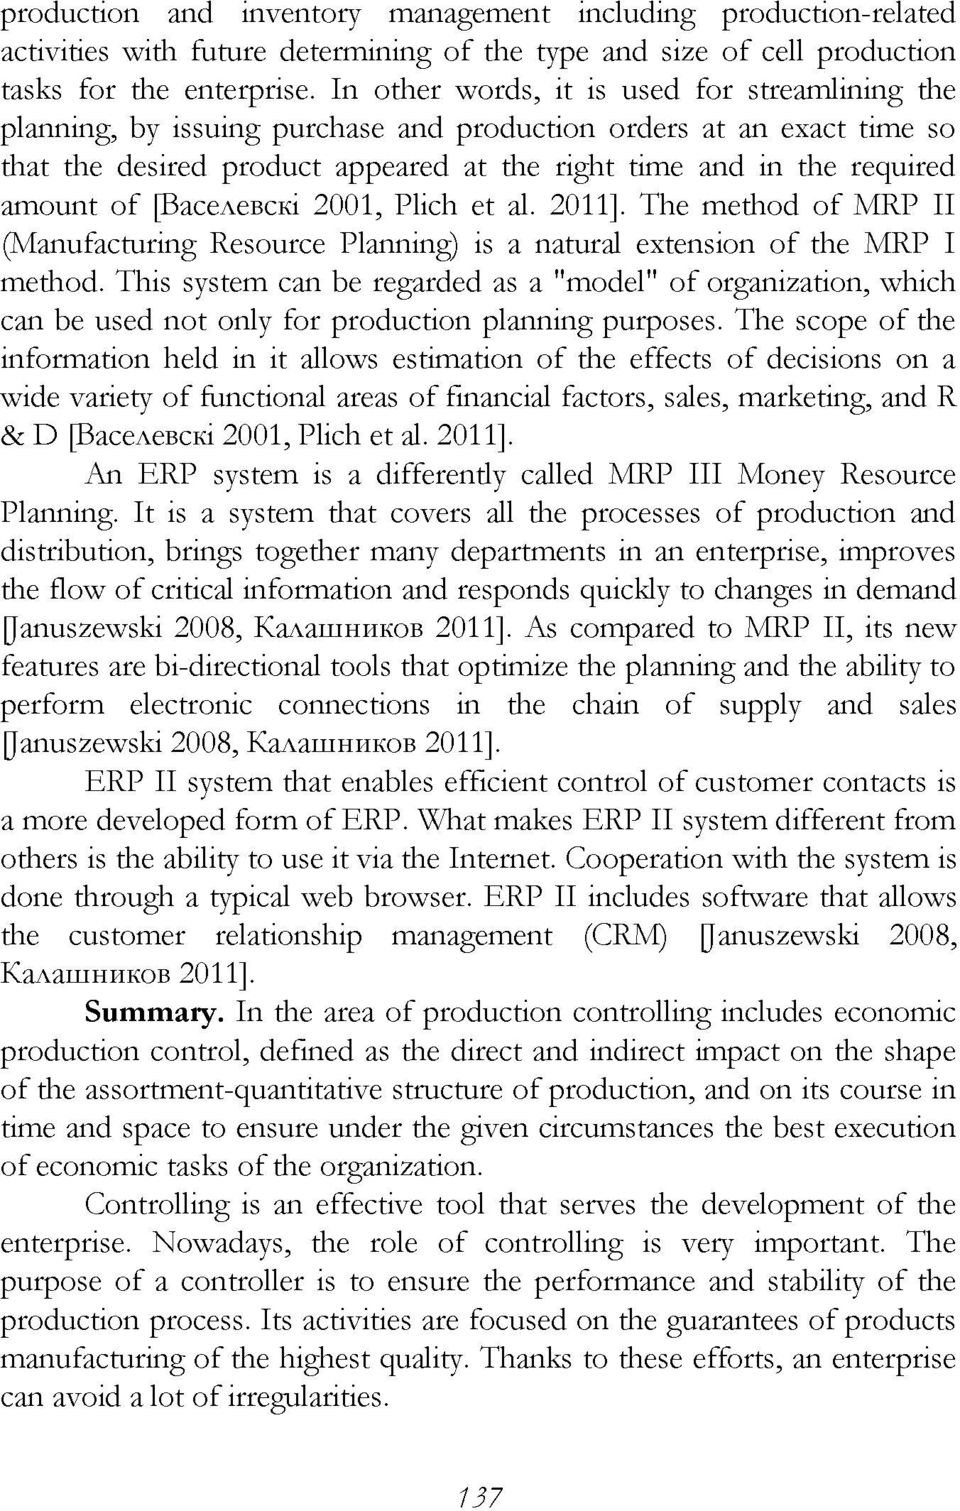 of [BaceAeBciti 2001, Plich et al. 2011]. The method of MRP II (Manufacturing Resource Planning) is a natural extension of the MRP I method.